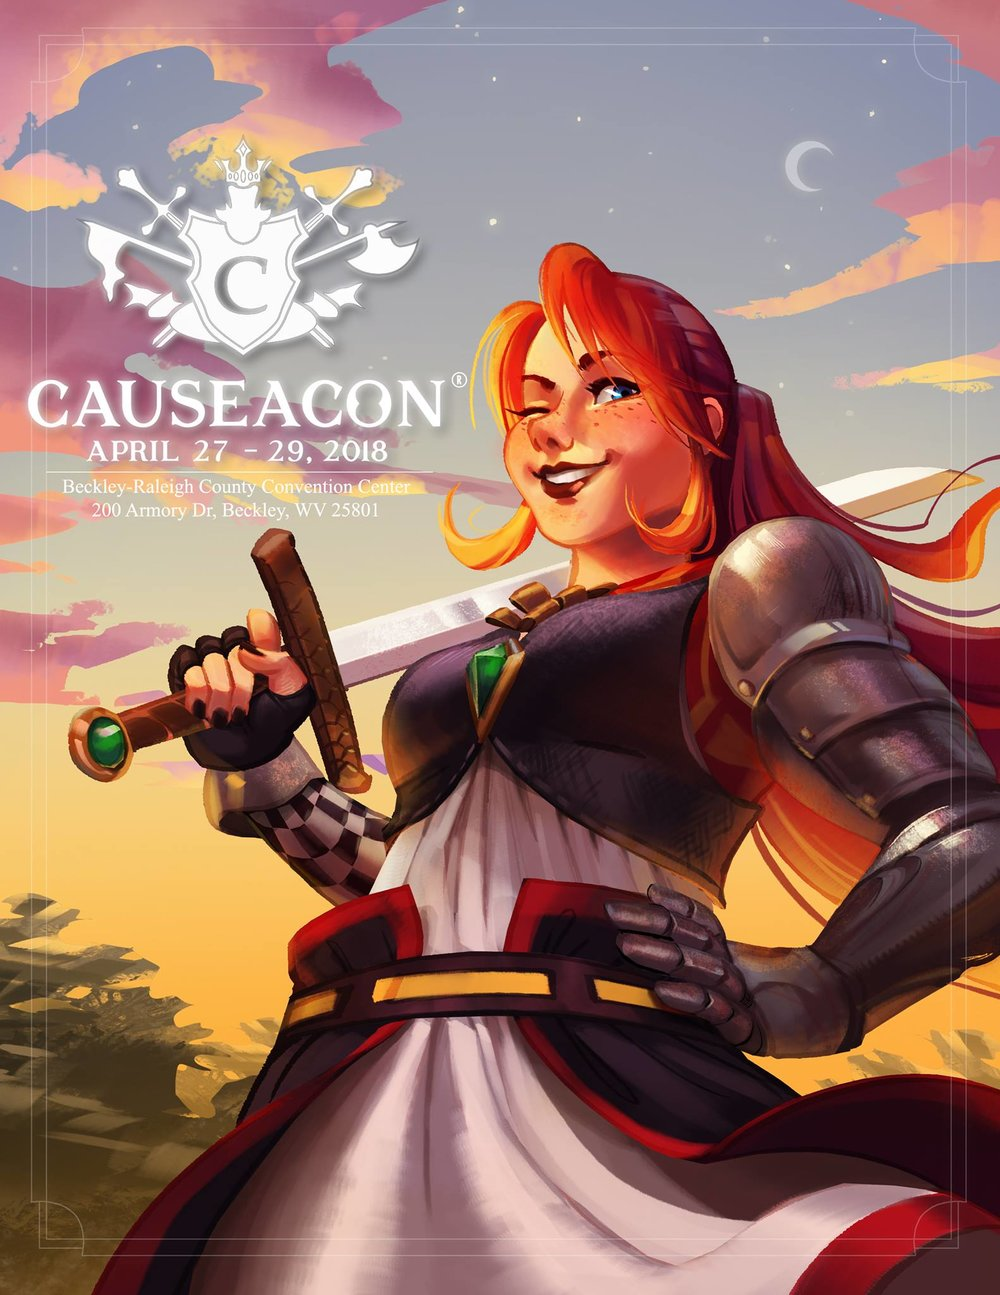 Causeacon - Causeacon® is Beckley's first ever Pop Culture convention which includes all fandoms from anime to Star Wars, gaming and so much more! All proceeds of the convention will benefit the Women's Resource Center right here in Beckley WV. We will be offering a variety of activities at The Beckley-Raleigh County Convention Center including: cosplay contests, video game and table top tournaments, vendor room, panels and classes, anime screening room, game shows, raves and a formal ball! You can benefit this community just by attending and having a great time!